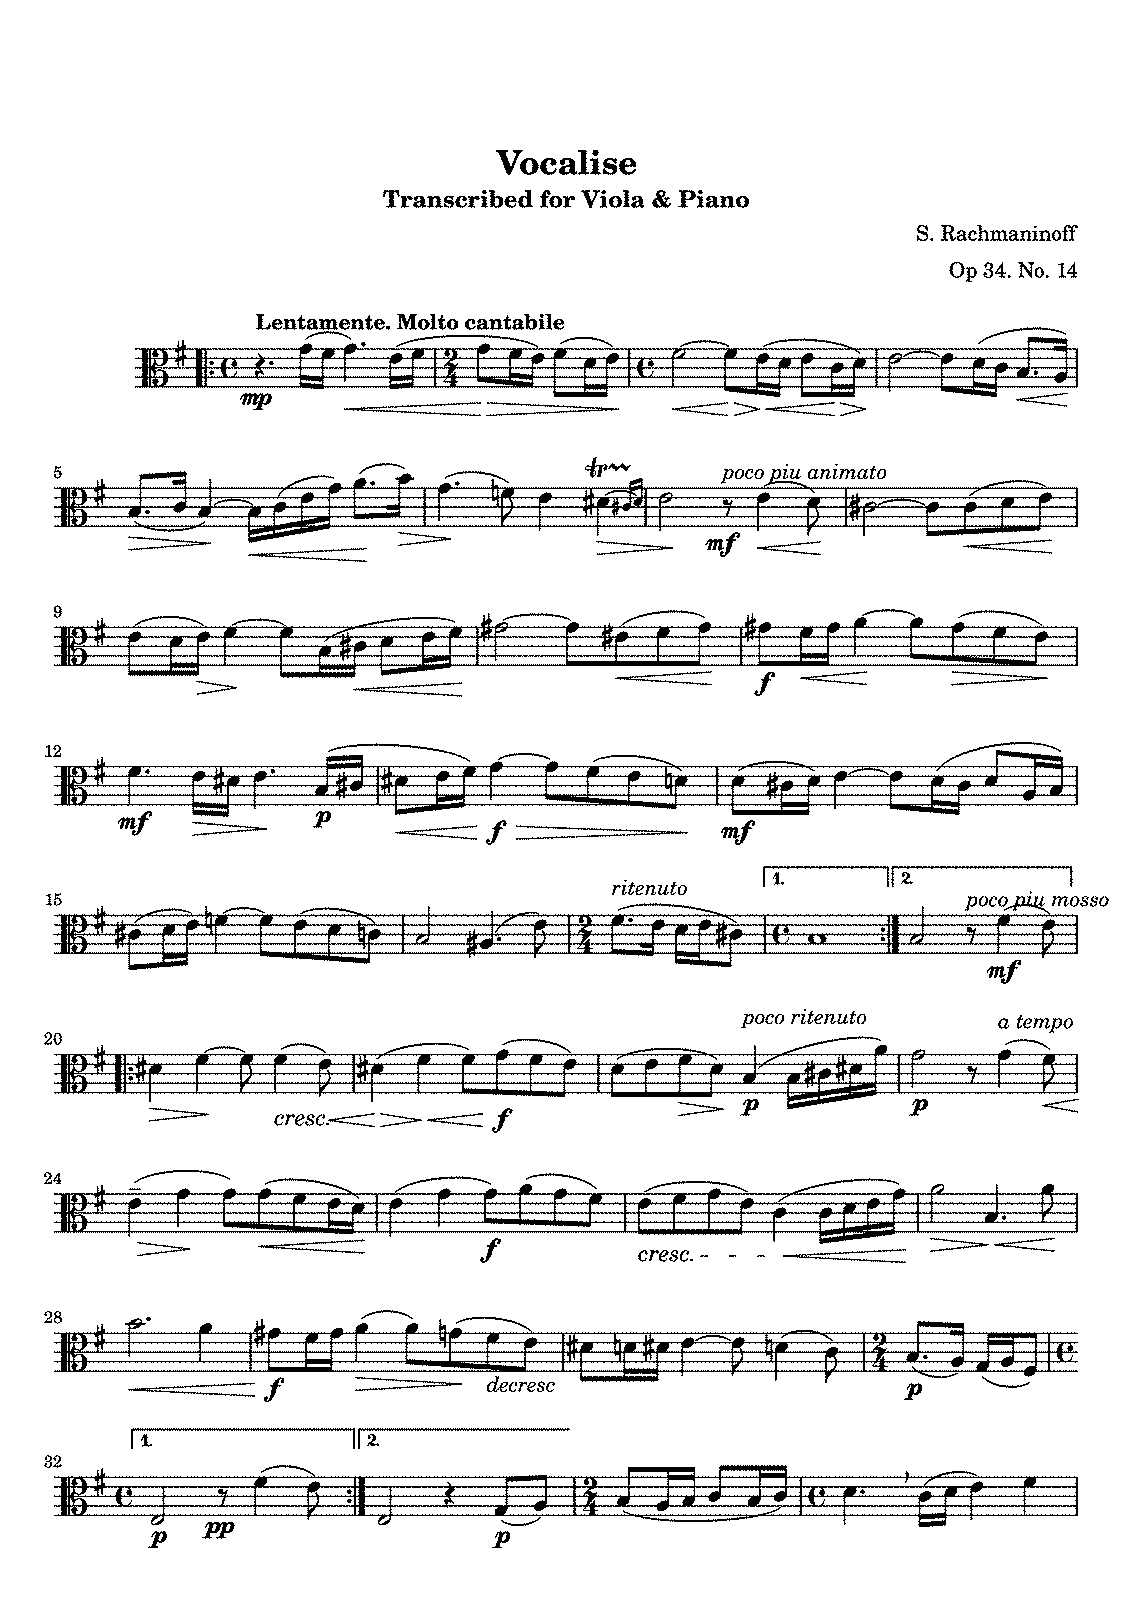 PMLP17852-Vocalise.pdf